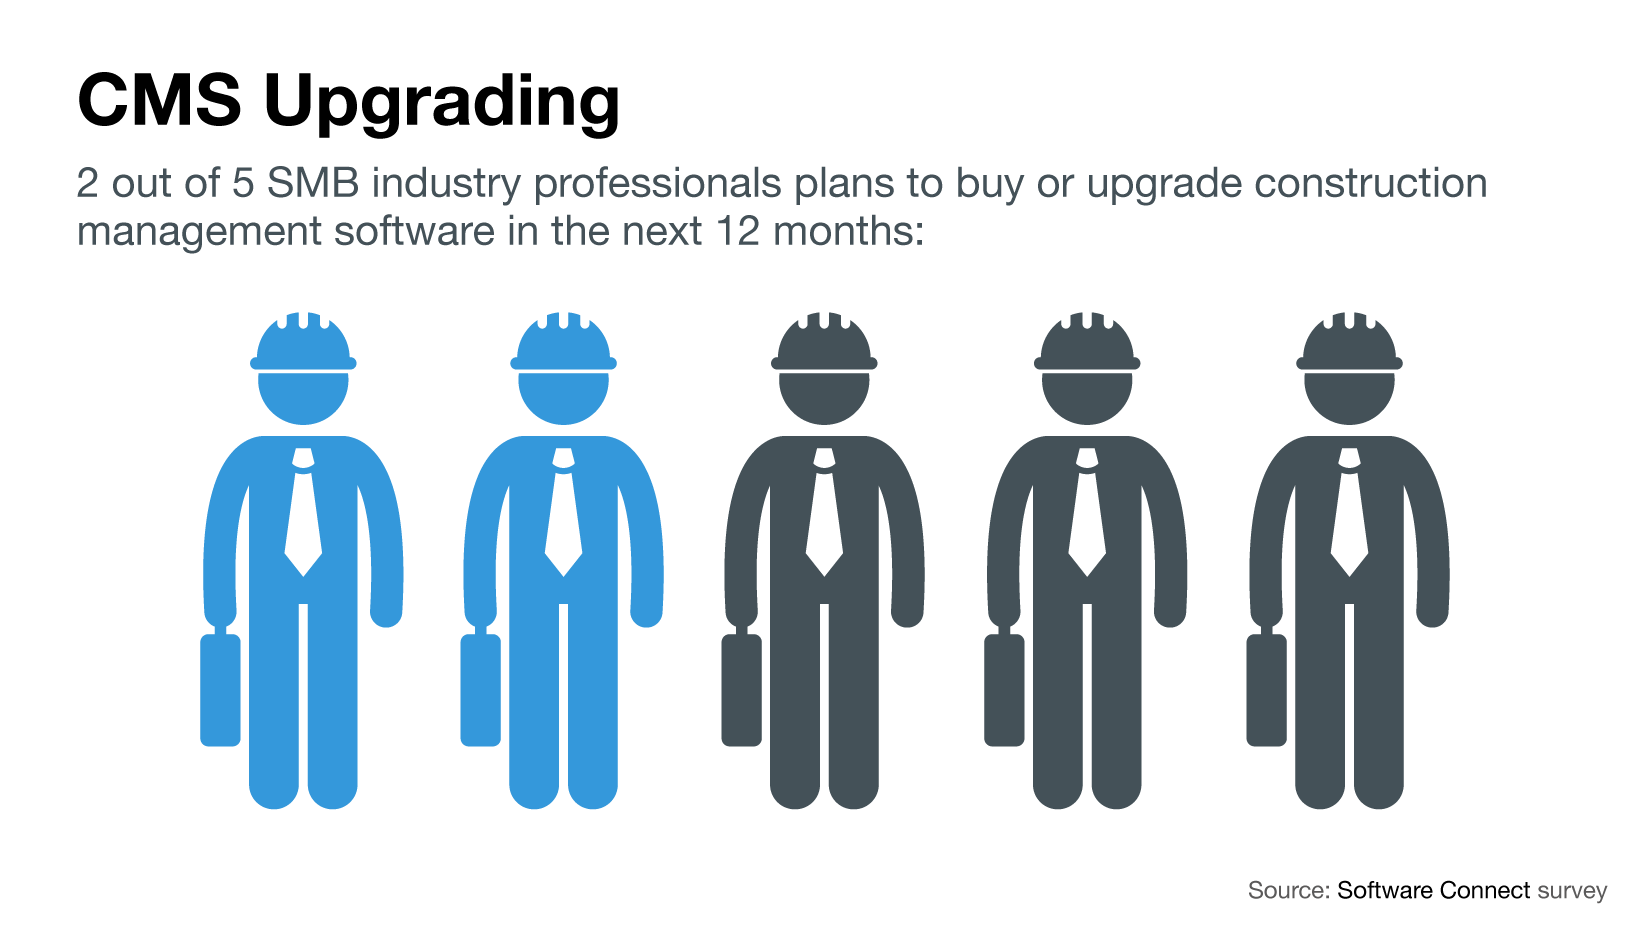 2 out of 5 SMB construction businesses plan to buy or upgrade their construction management software in the next 12 months